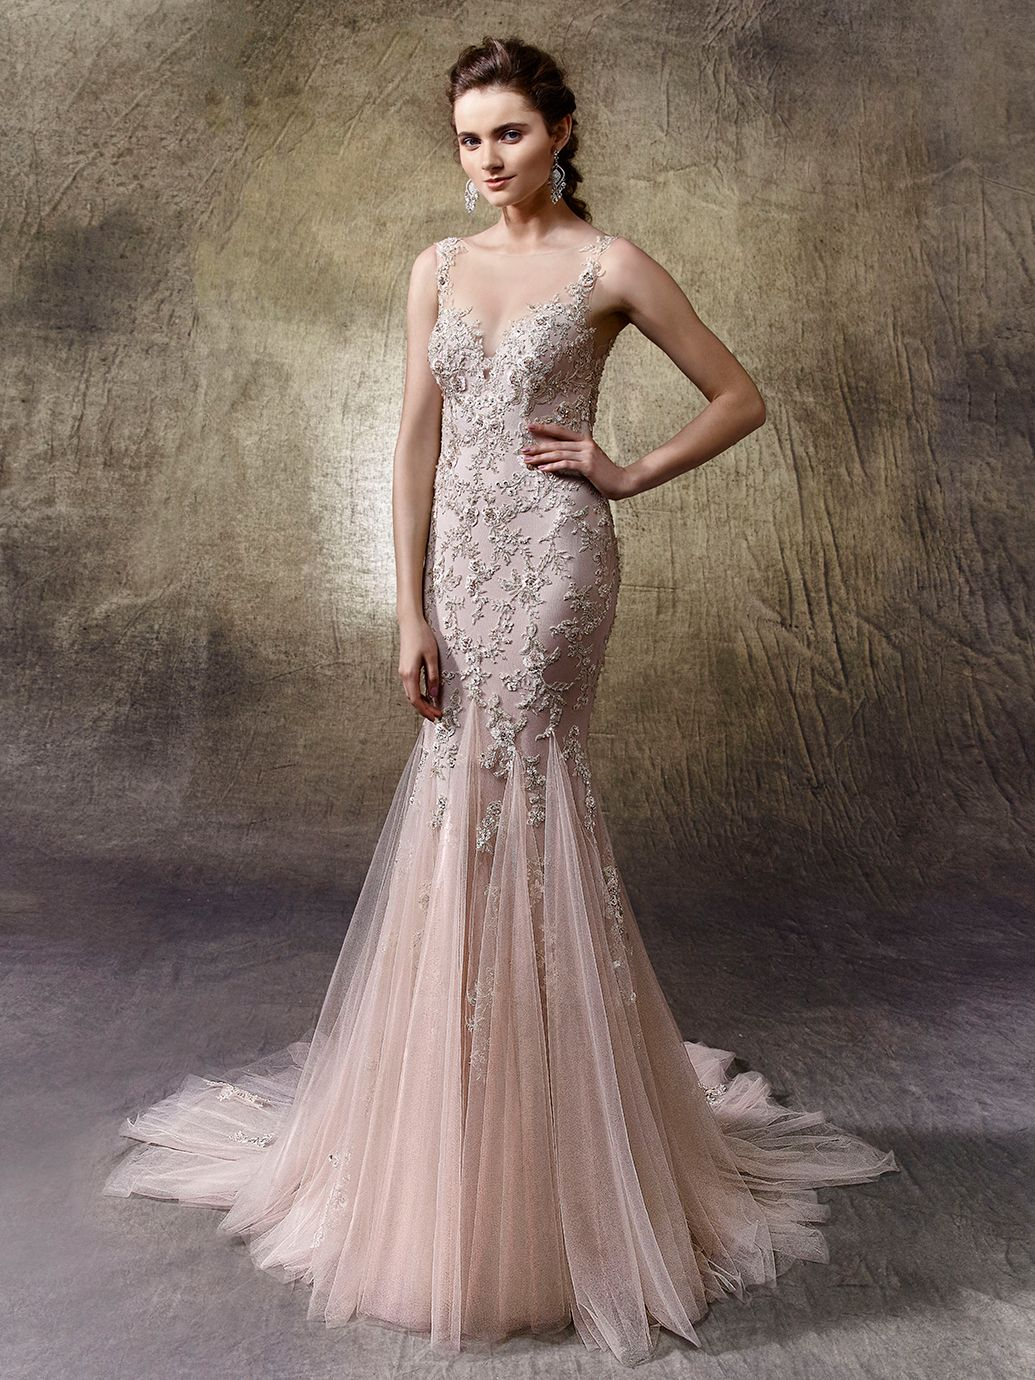 2017 enzoani linette front view 2017 enzoani collection wedding dresses out of enzoani linette collection enzoani silhouette mermaid trumpet neckline v neck without sleeves ombrellifo Choice Image